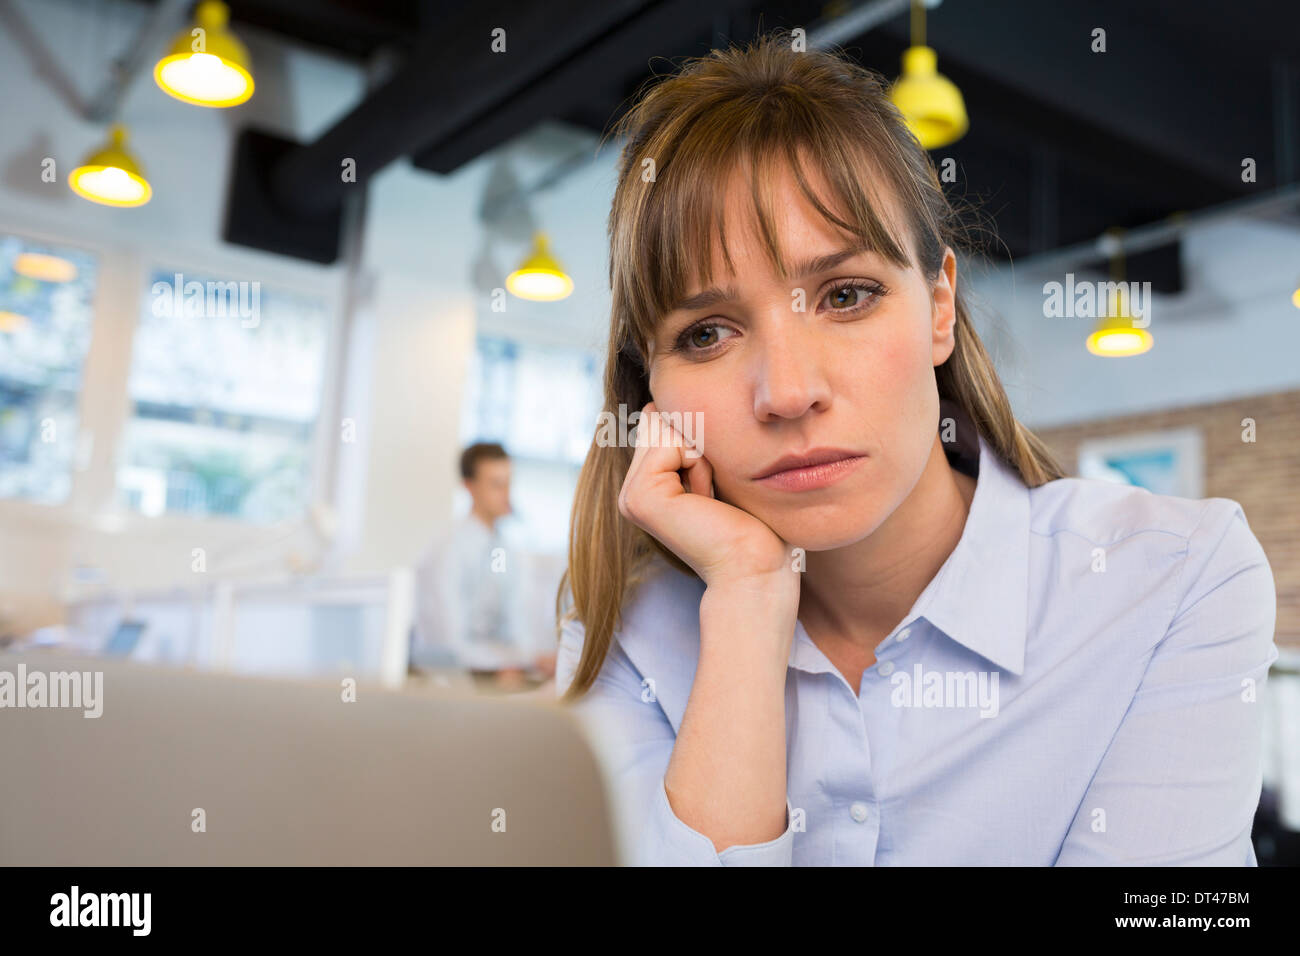 Female business tired desk computer - Stock Image